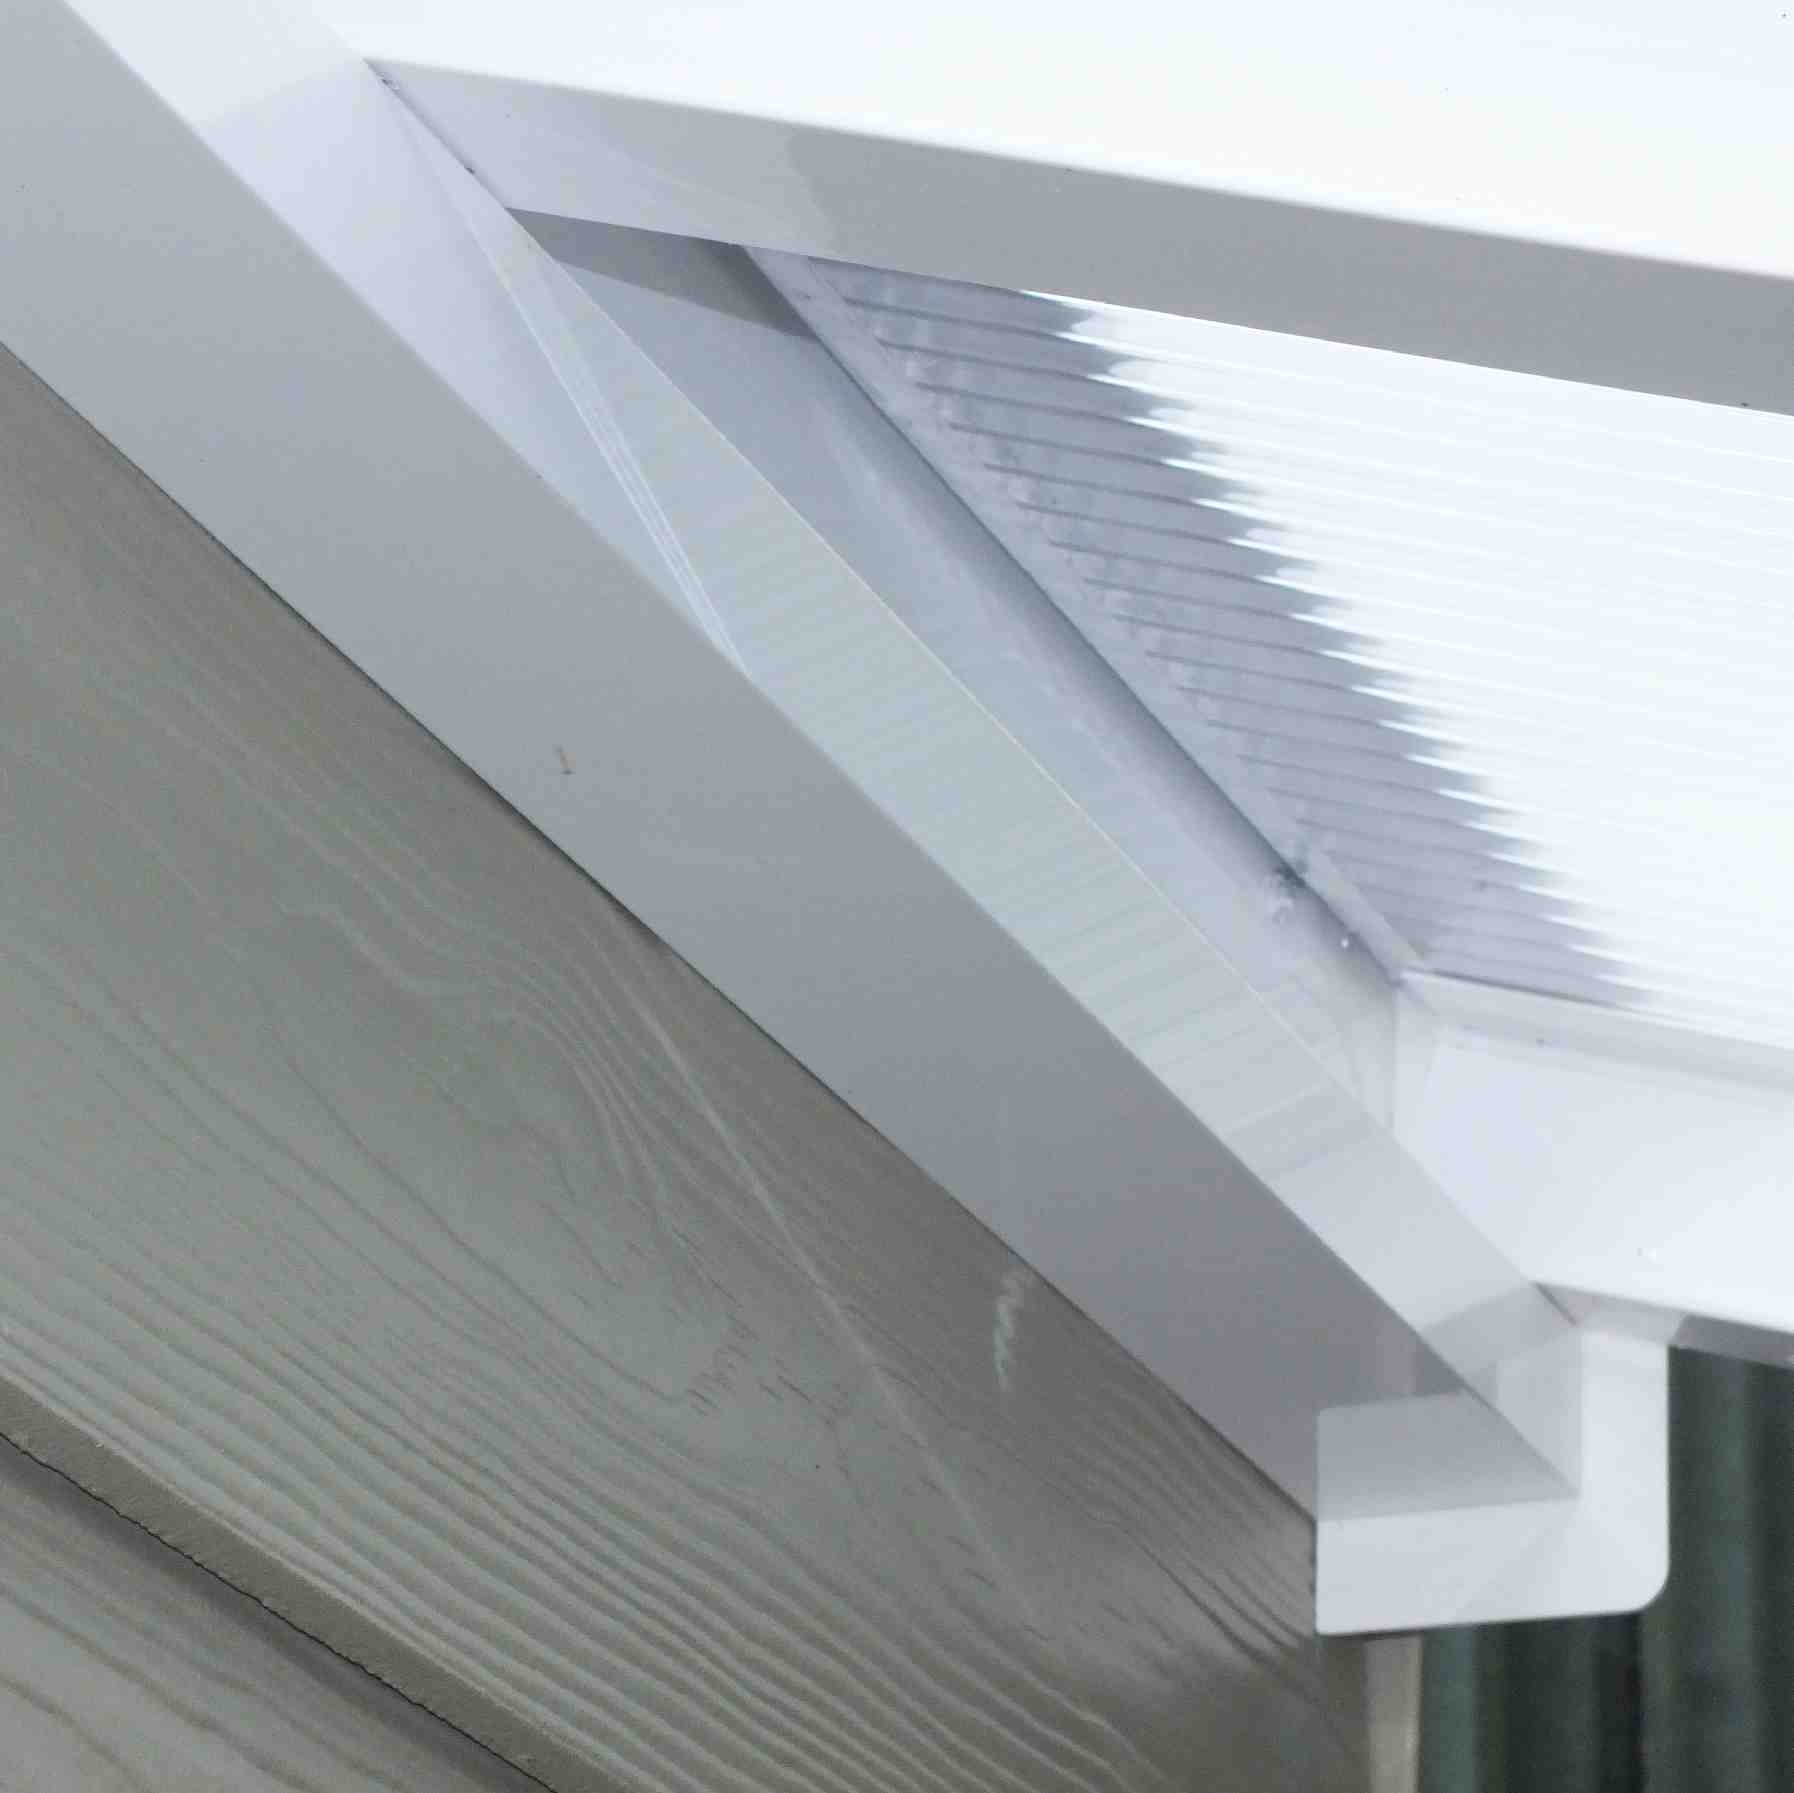 Great deals on Omega Verandah with 6mm Glass Clear Plate Polycarbonate Glazing - 3.5m (W) x 1.5m (P), (3) Supporting Posts